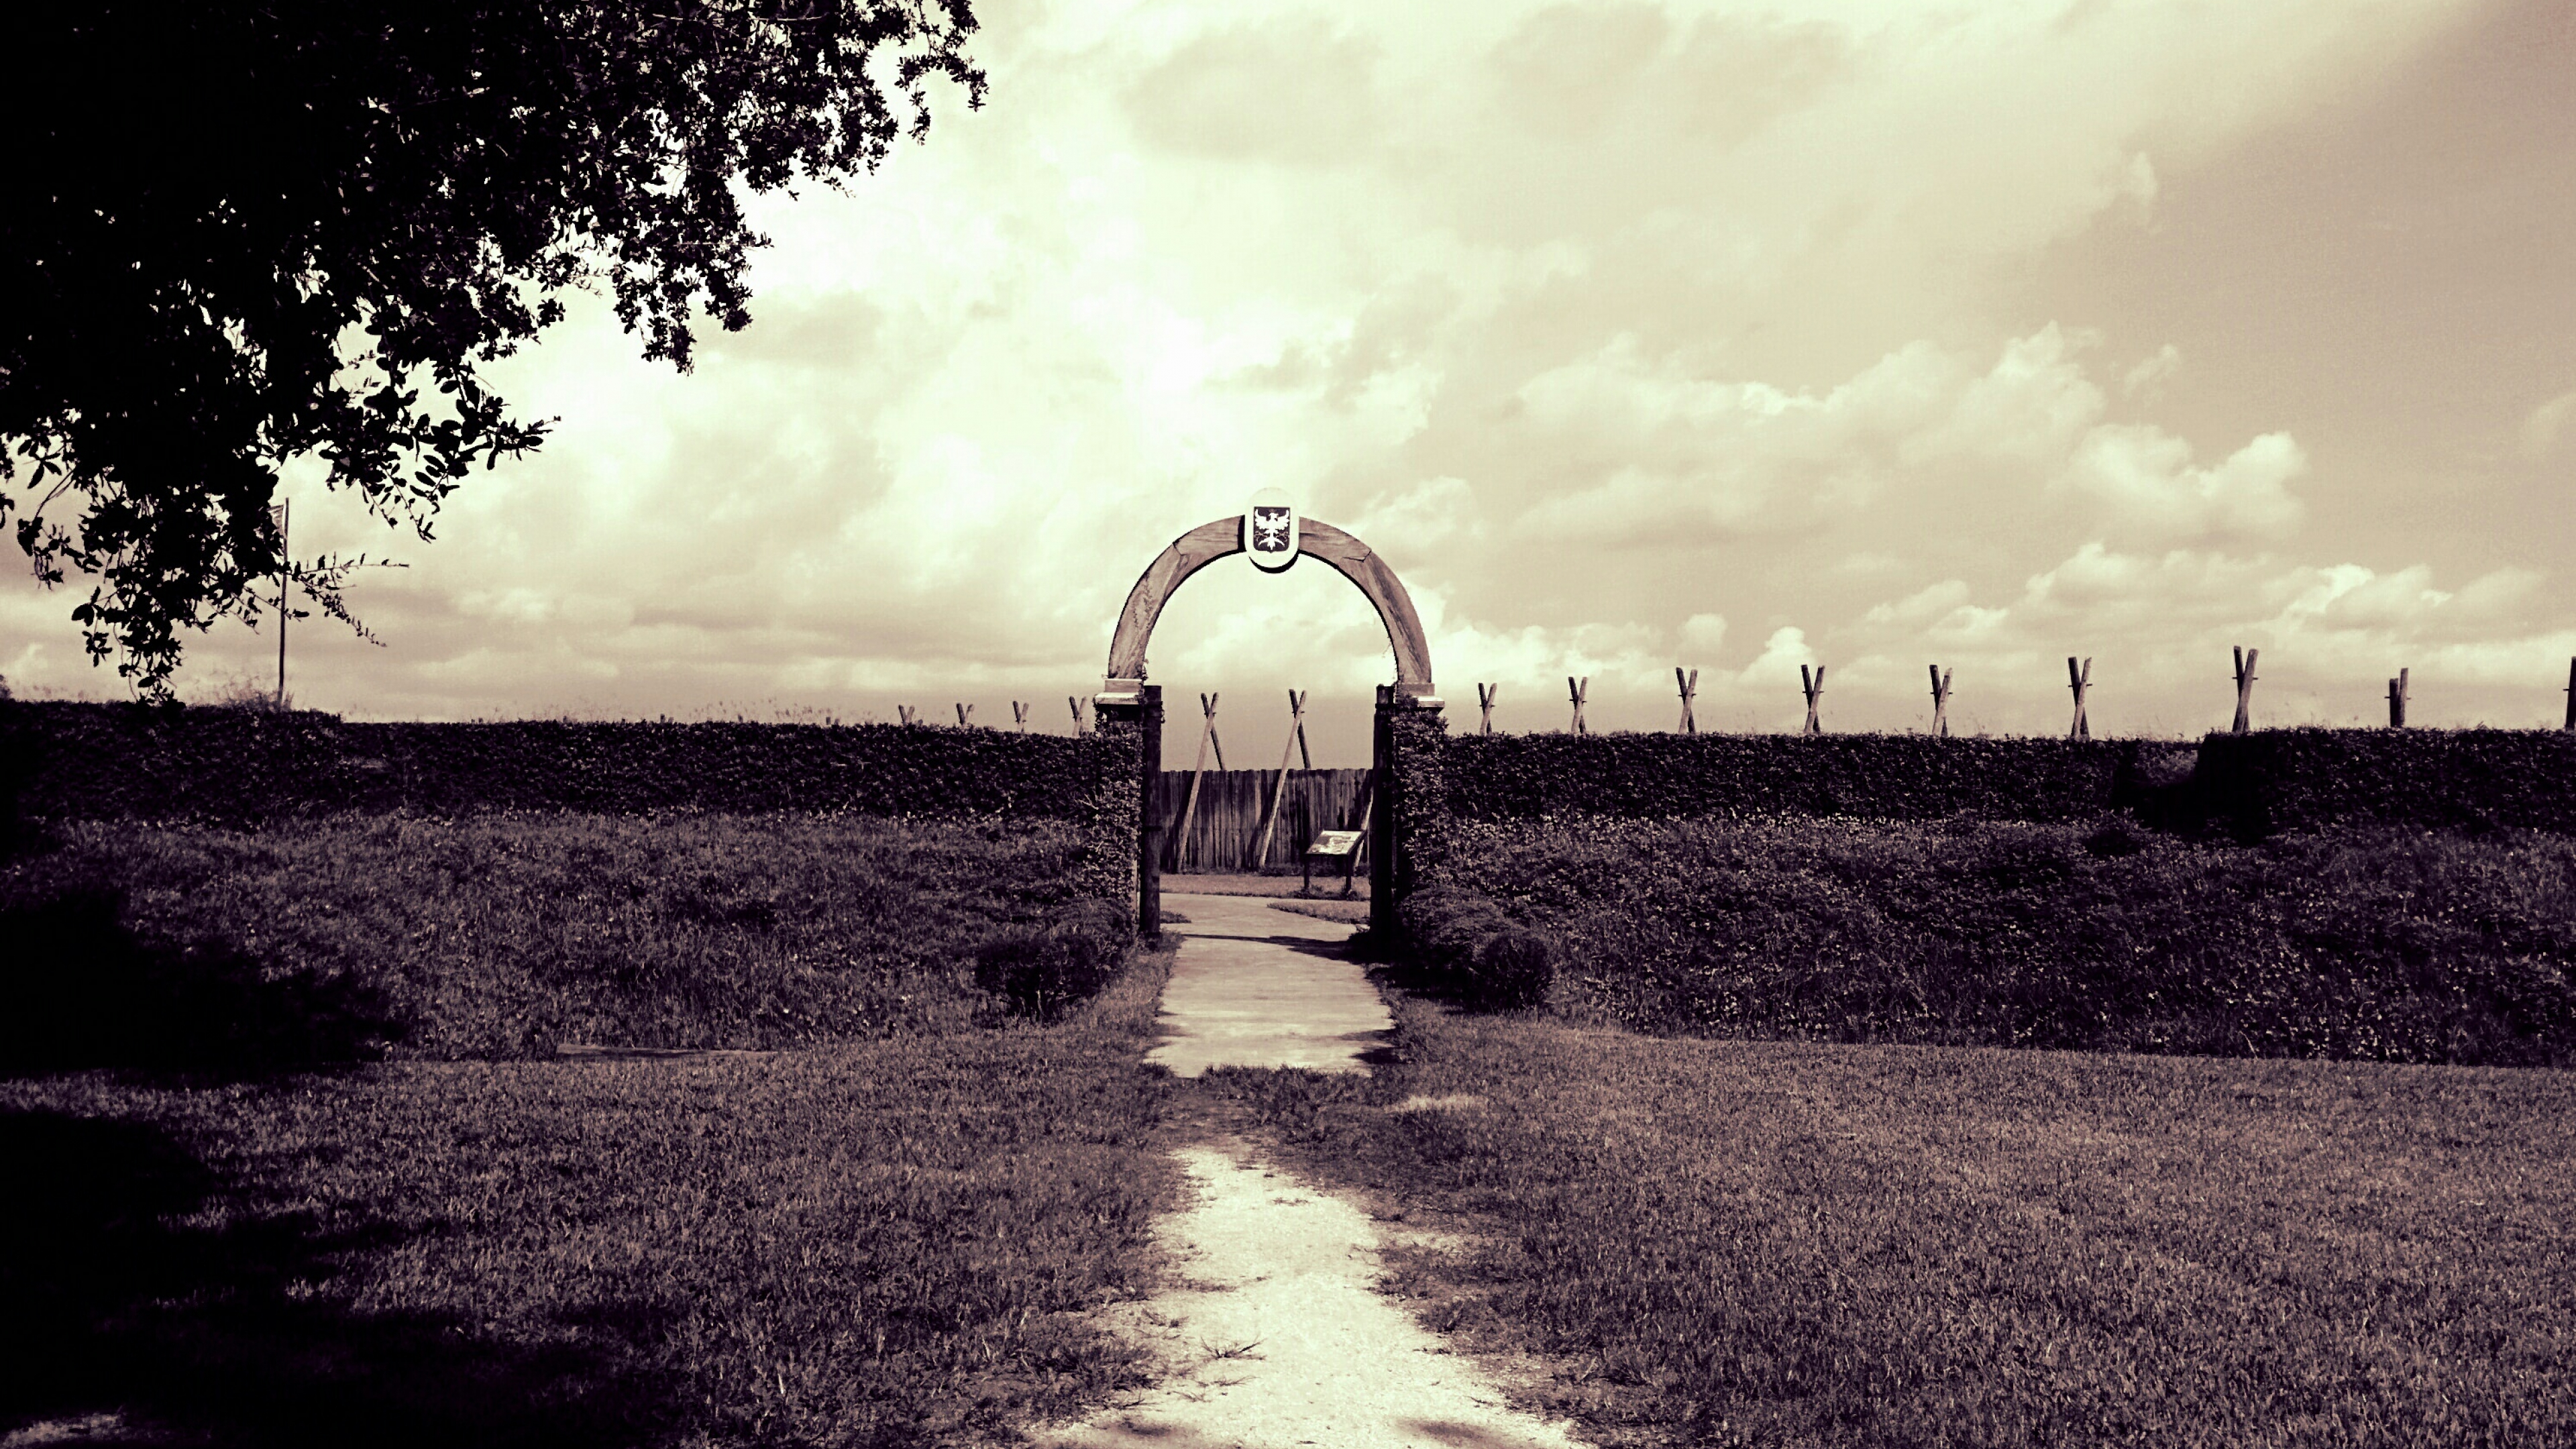 The arched entryway to Fort Caroline National Monument